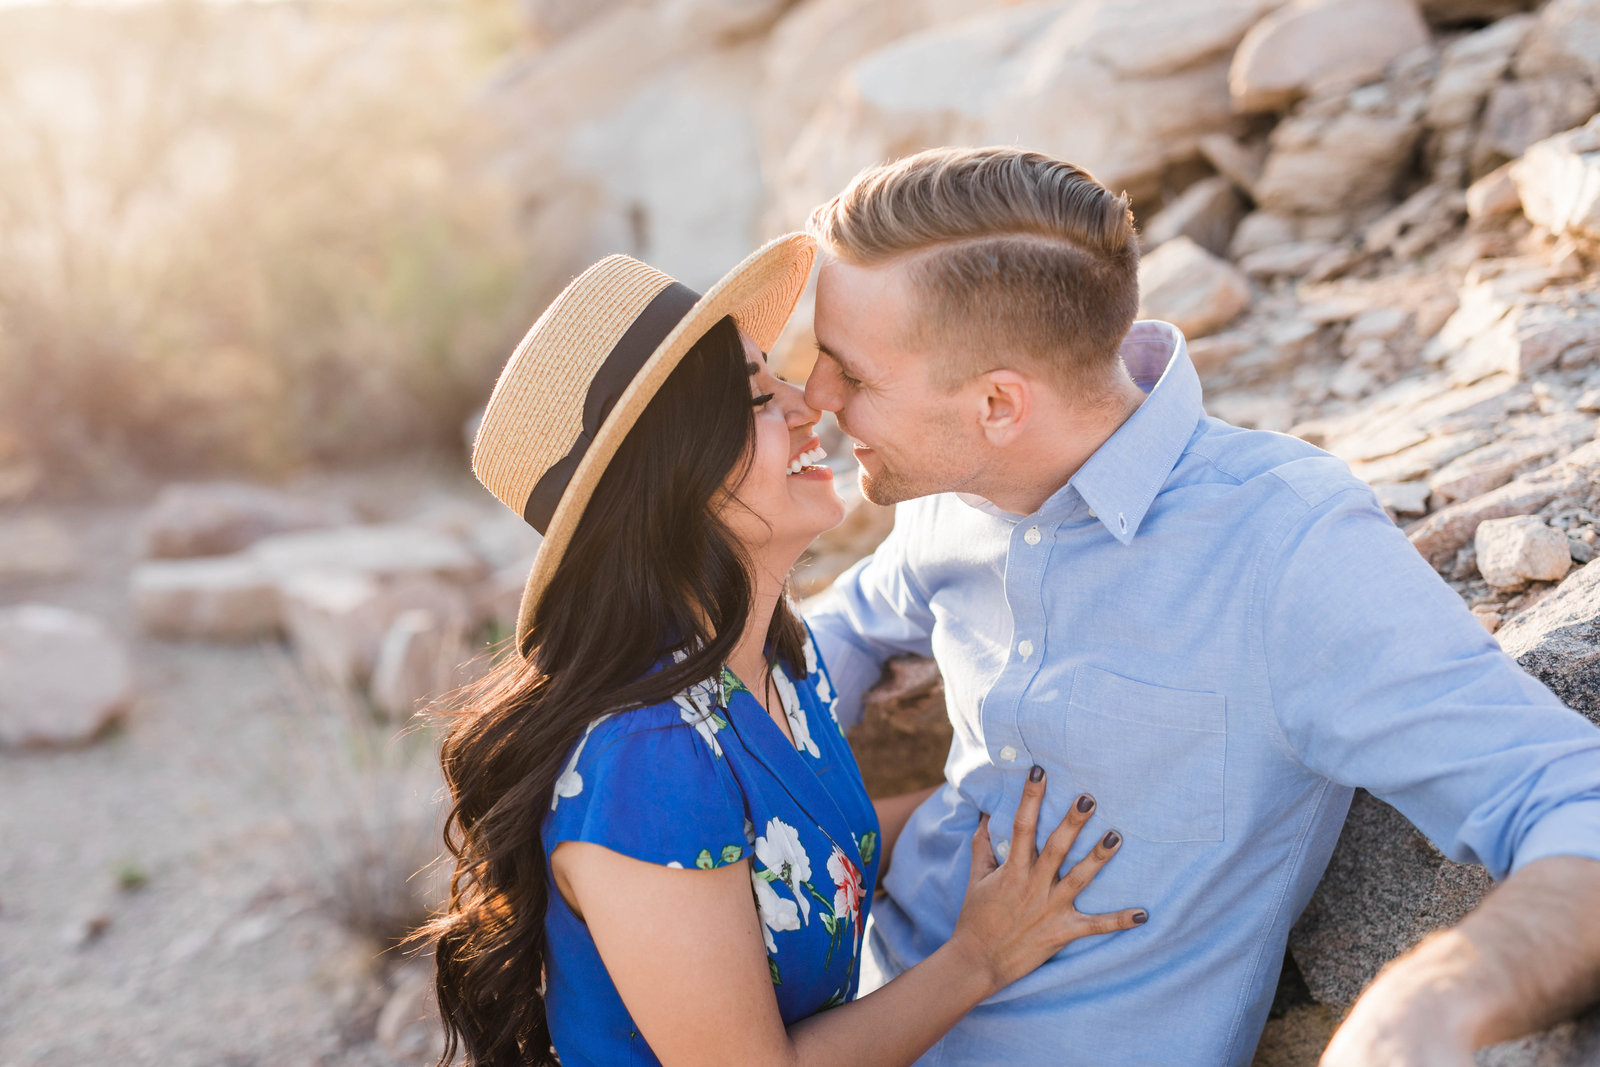 Engaged couple smiling at each other leaning against a rock in the desert